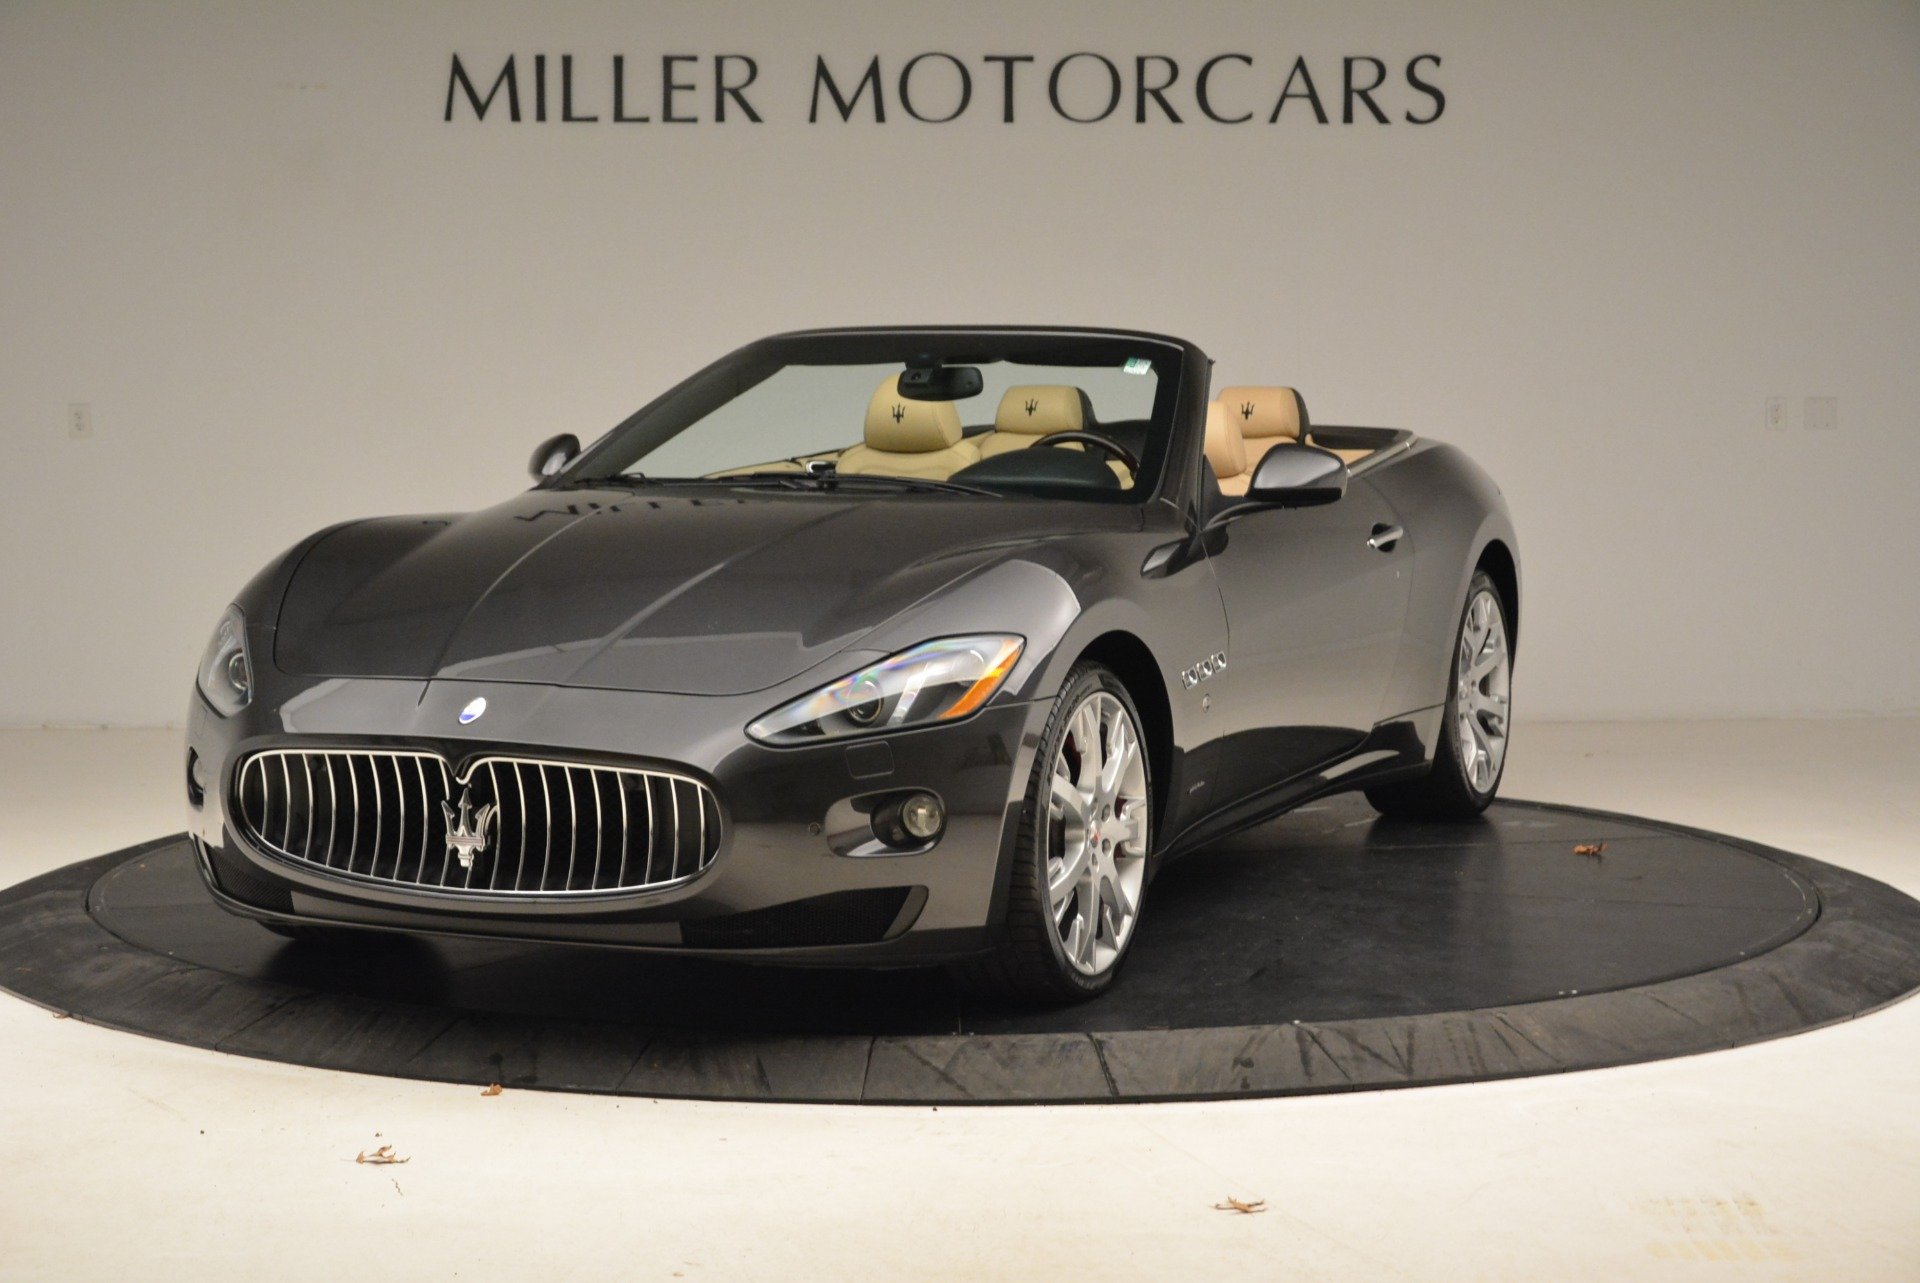 Used 2013 Maserati GranTurismo Convertible for sale Sold at Rolls-Royce Motor Cars Greenwich in Greenwich CT 06830 1